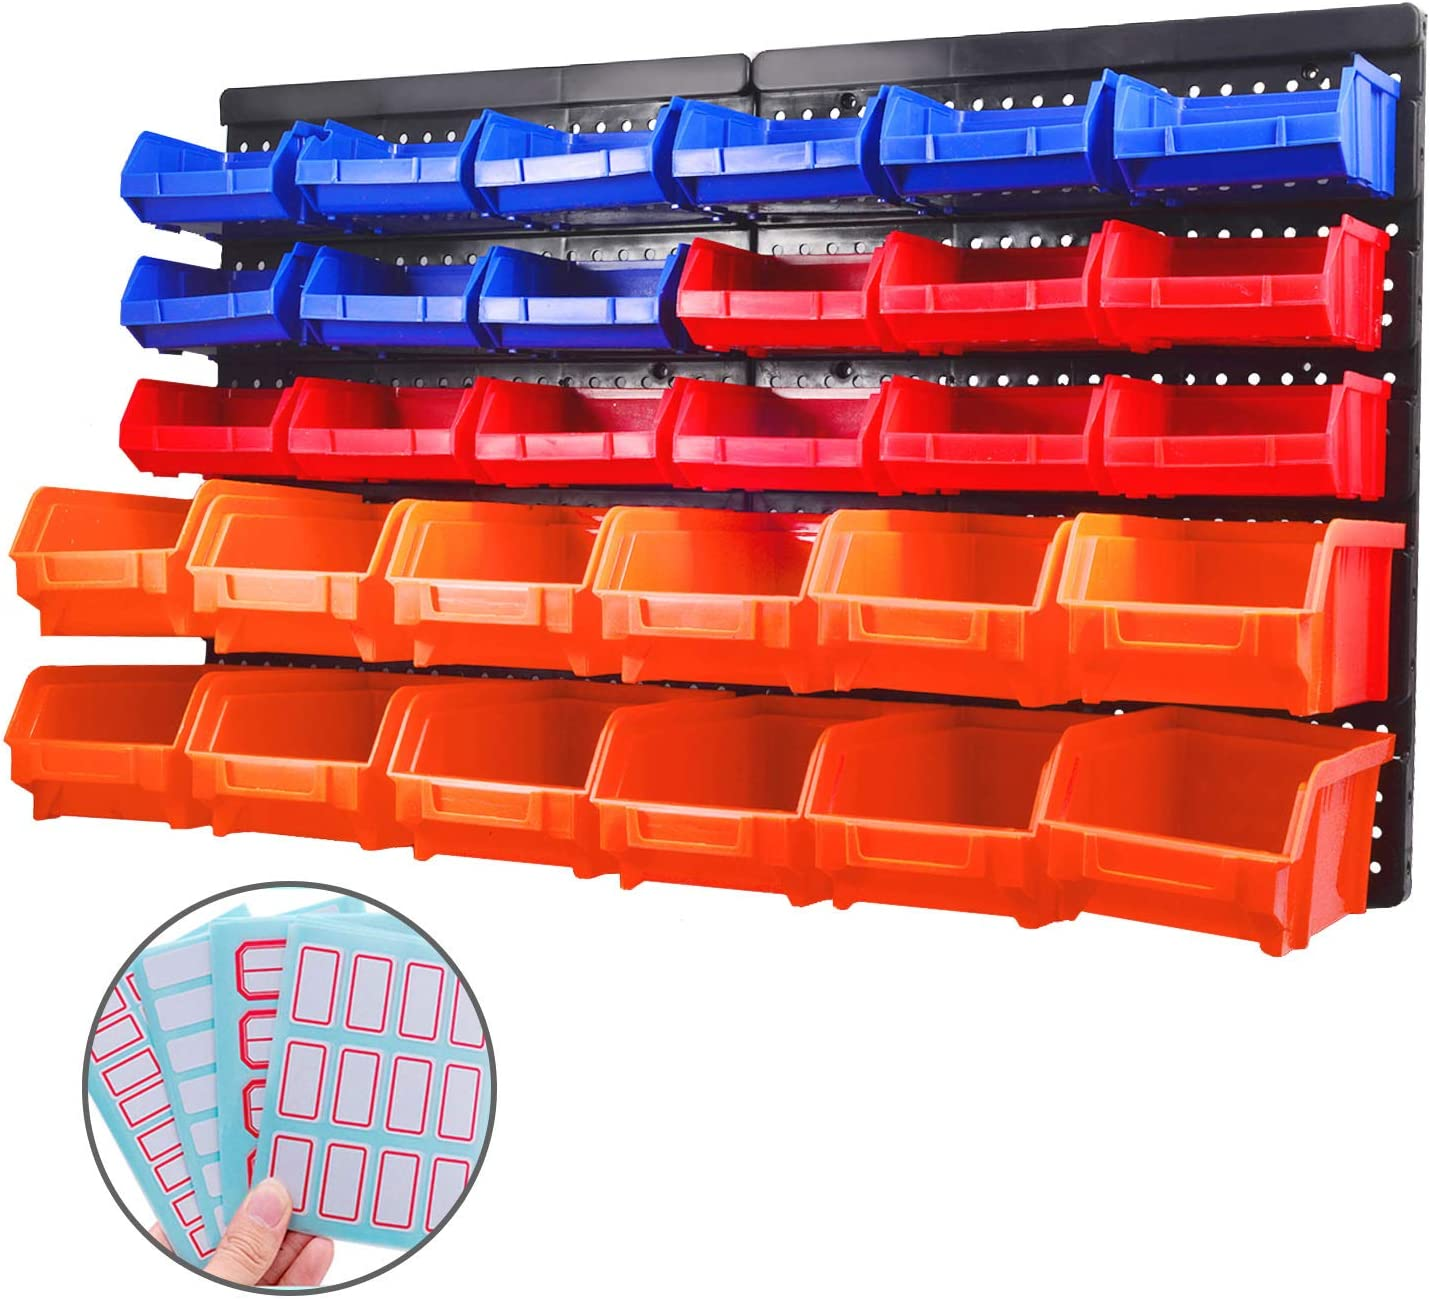 WISION Wall Mountable Storage Bins Container Parts 30 Bin Rack Organizer for Tools, Hardware, Crafts, Office Supplies and More